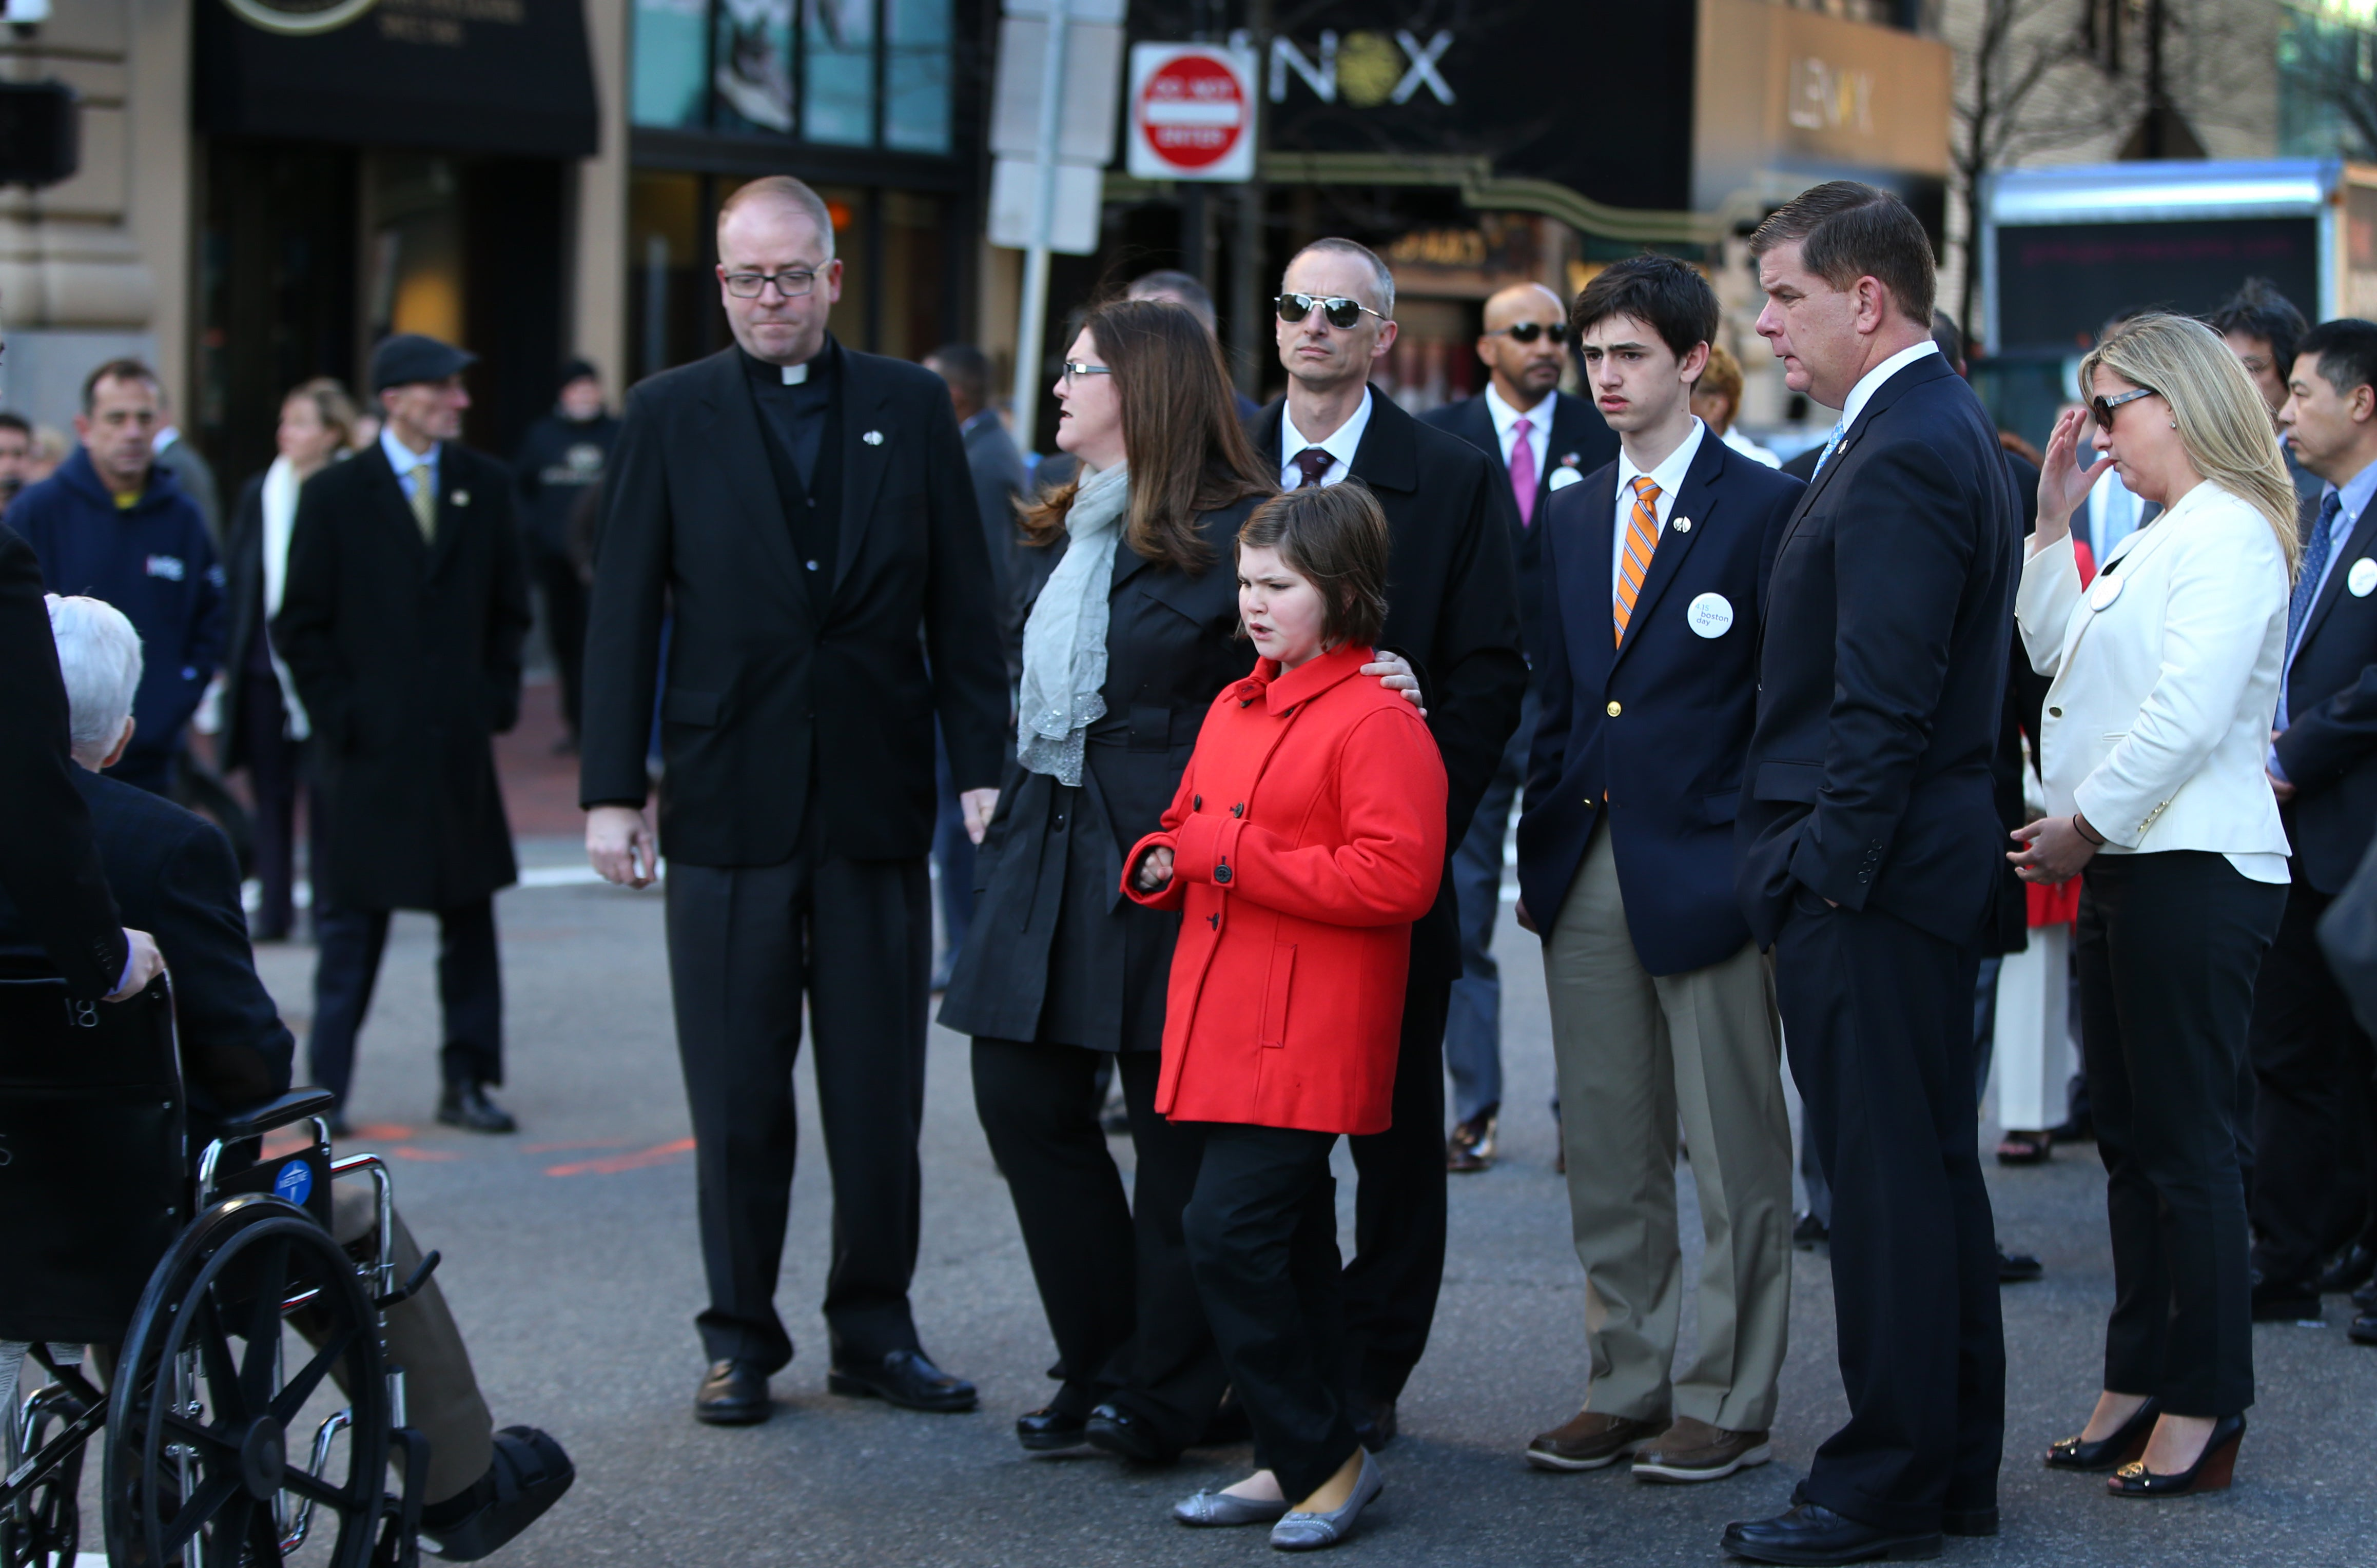 04152016 Boston Ma Boston Mayor Marty Walsh with the Richards famity and others after a Wreath Laying ceremony on Boylston Street to honor Marathon Bombing victims. THeir were two ceremonies one with the Governor and one with the Mayor .Boston Globe/Staff Photographer Jonathan Wiggs